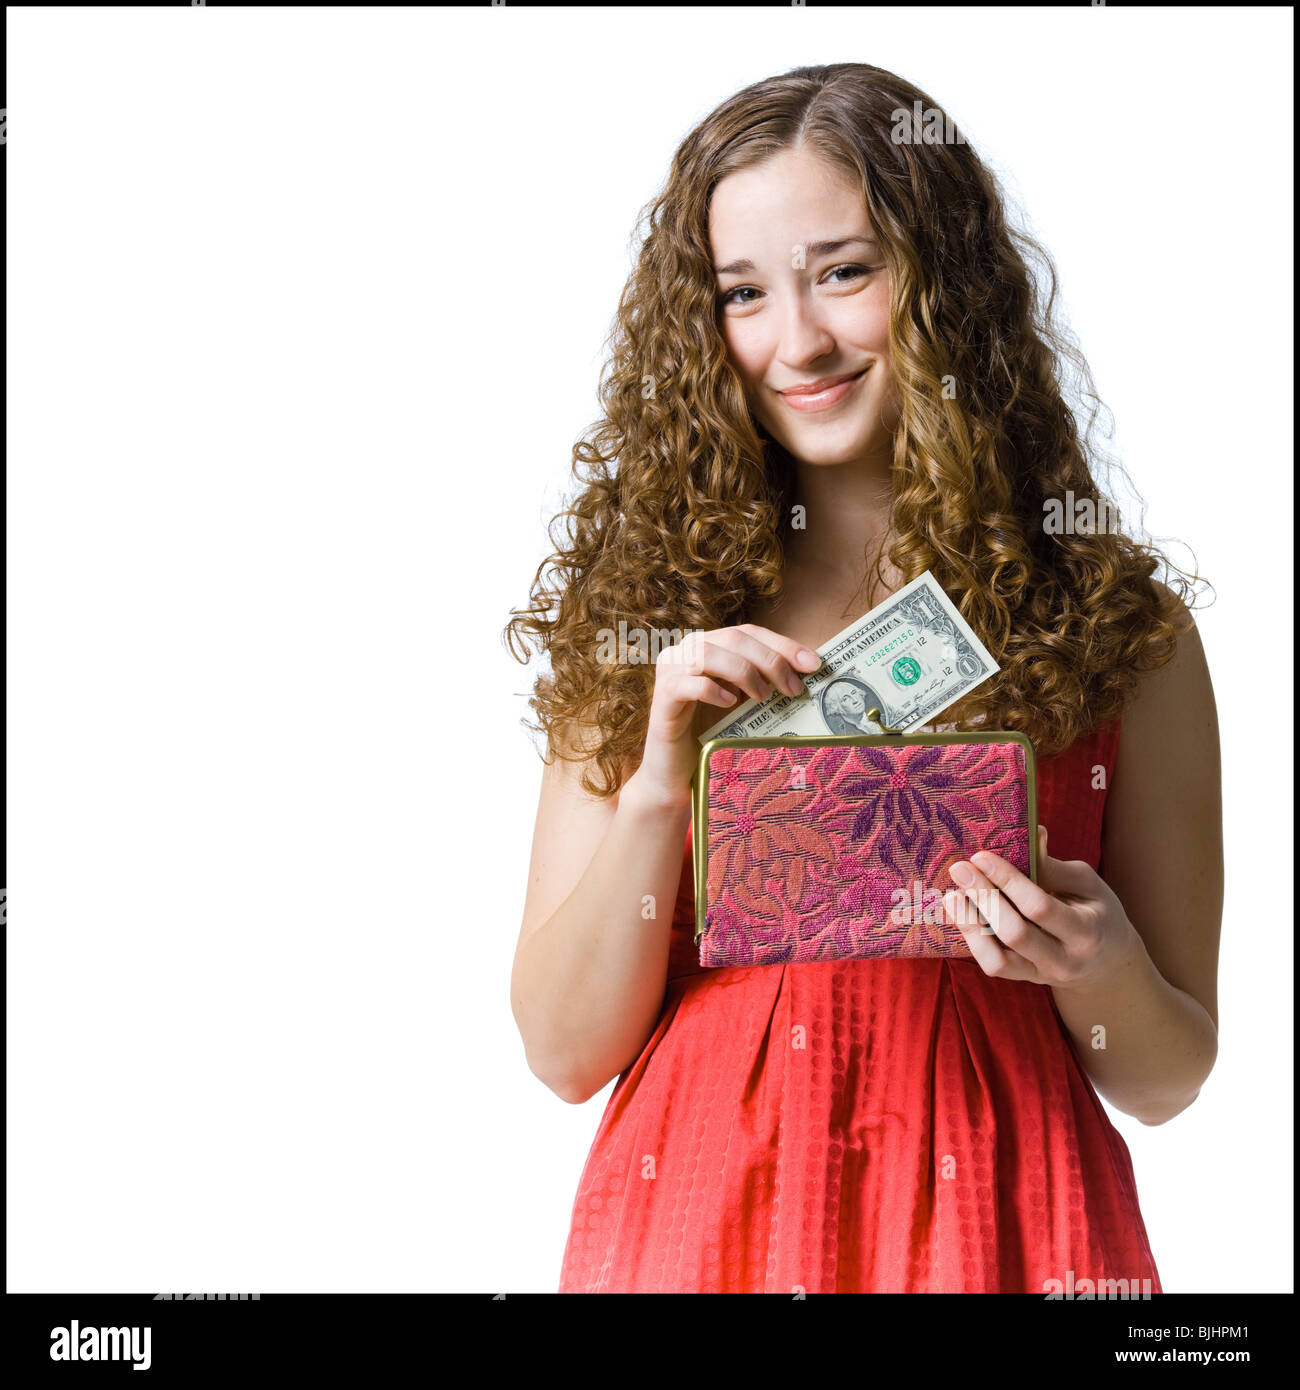 woman putting money in her purse - Stock Image